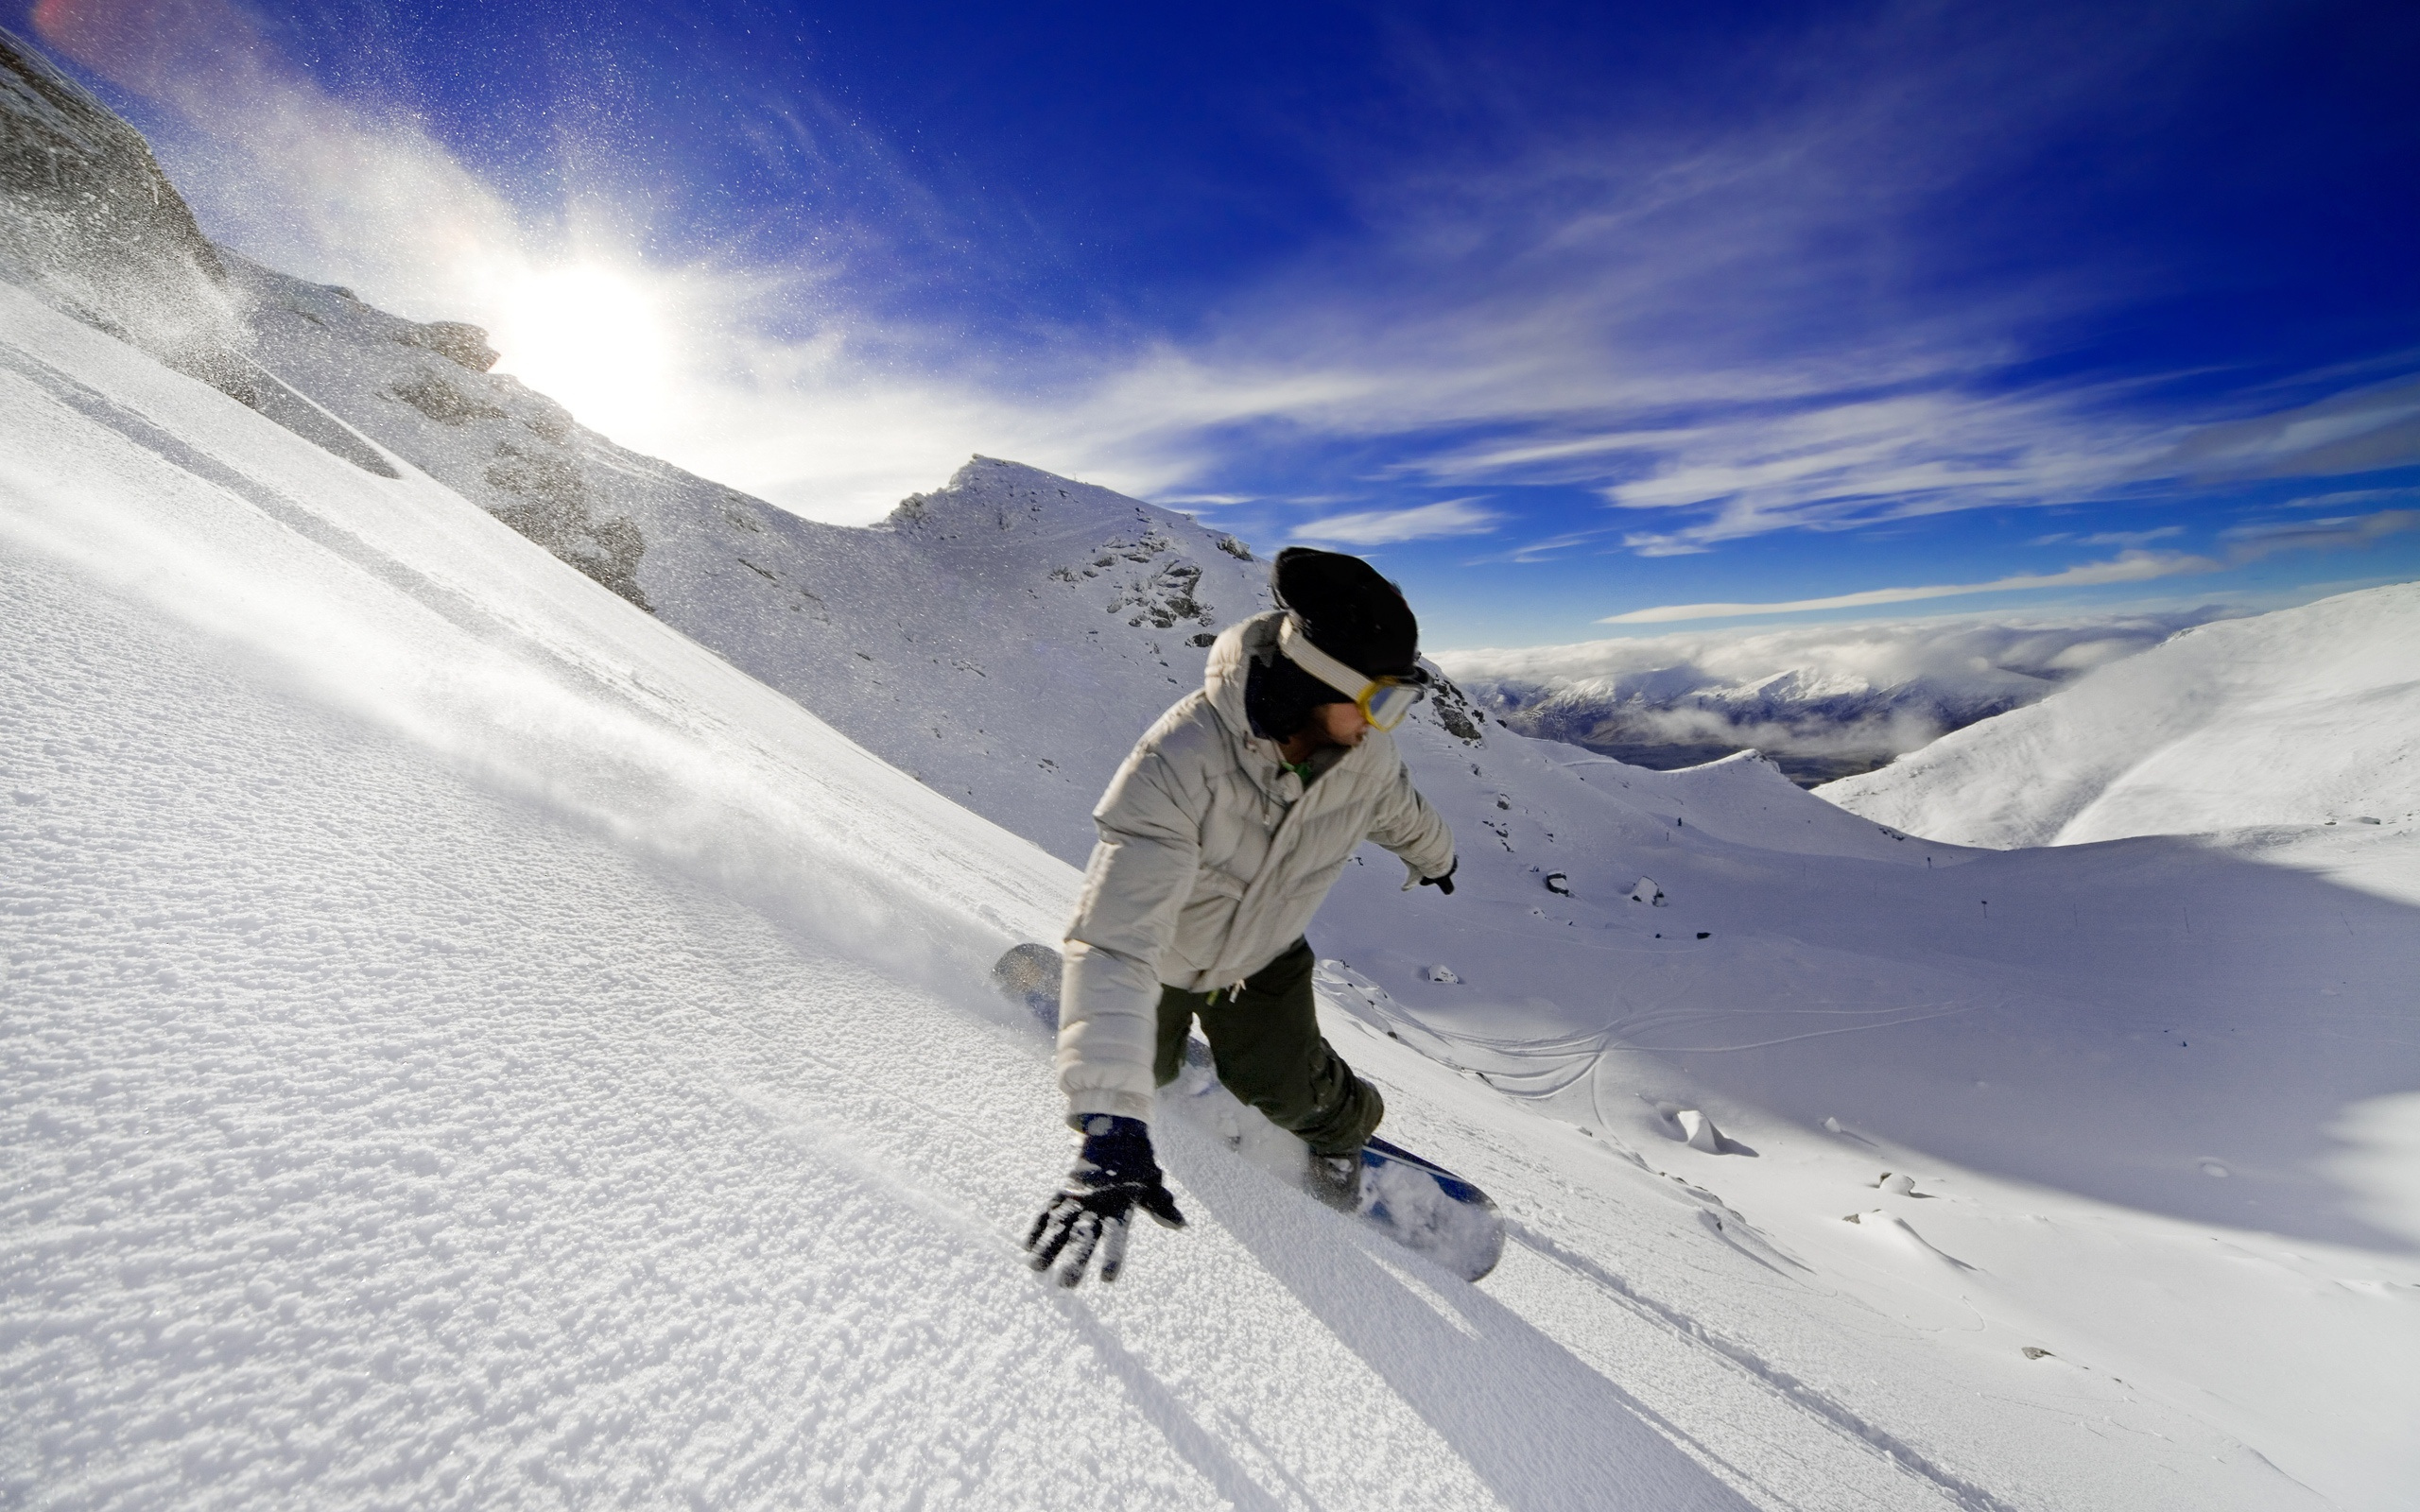 Snowboarding Wallpaper · Snowboarding Wallpaper ...